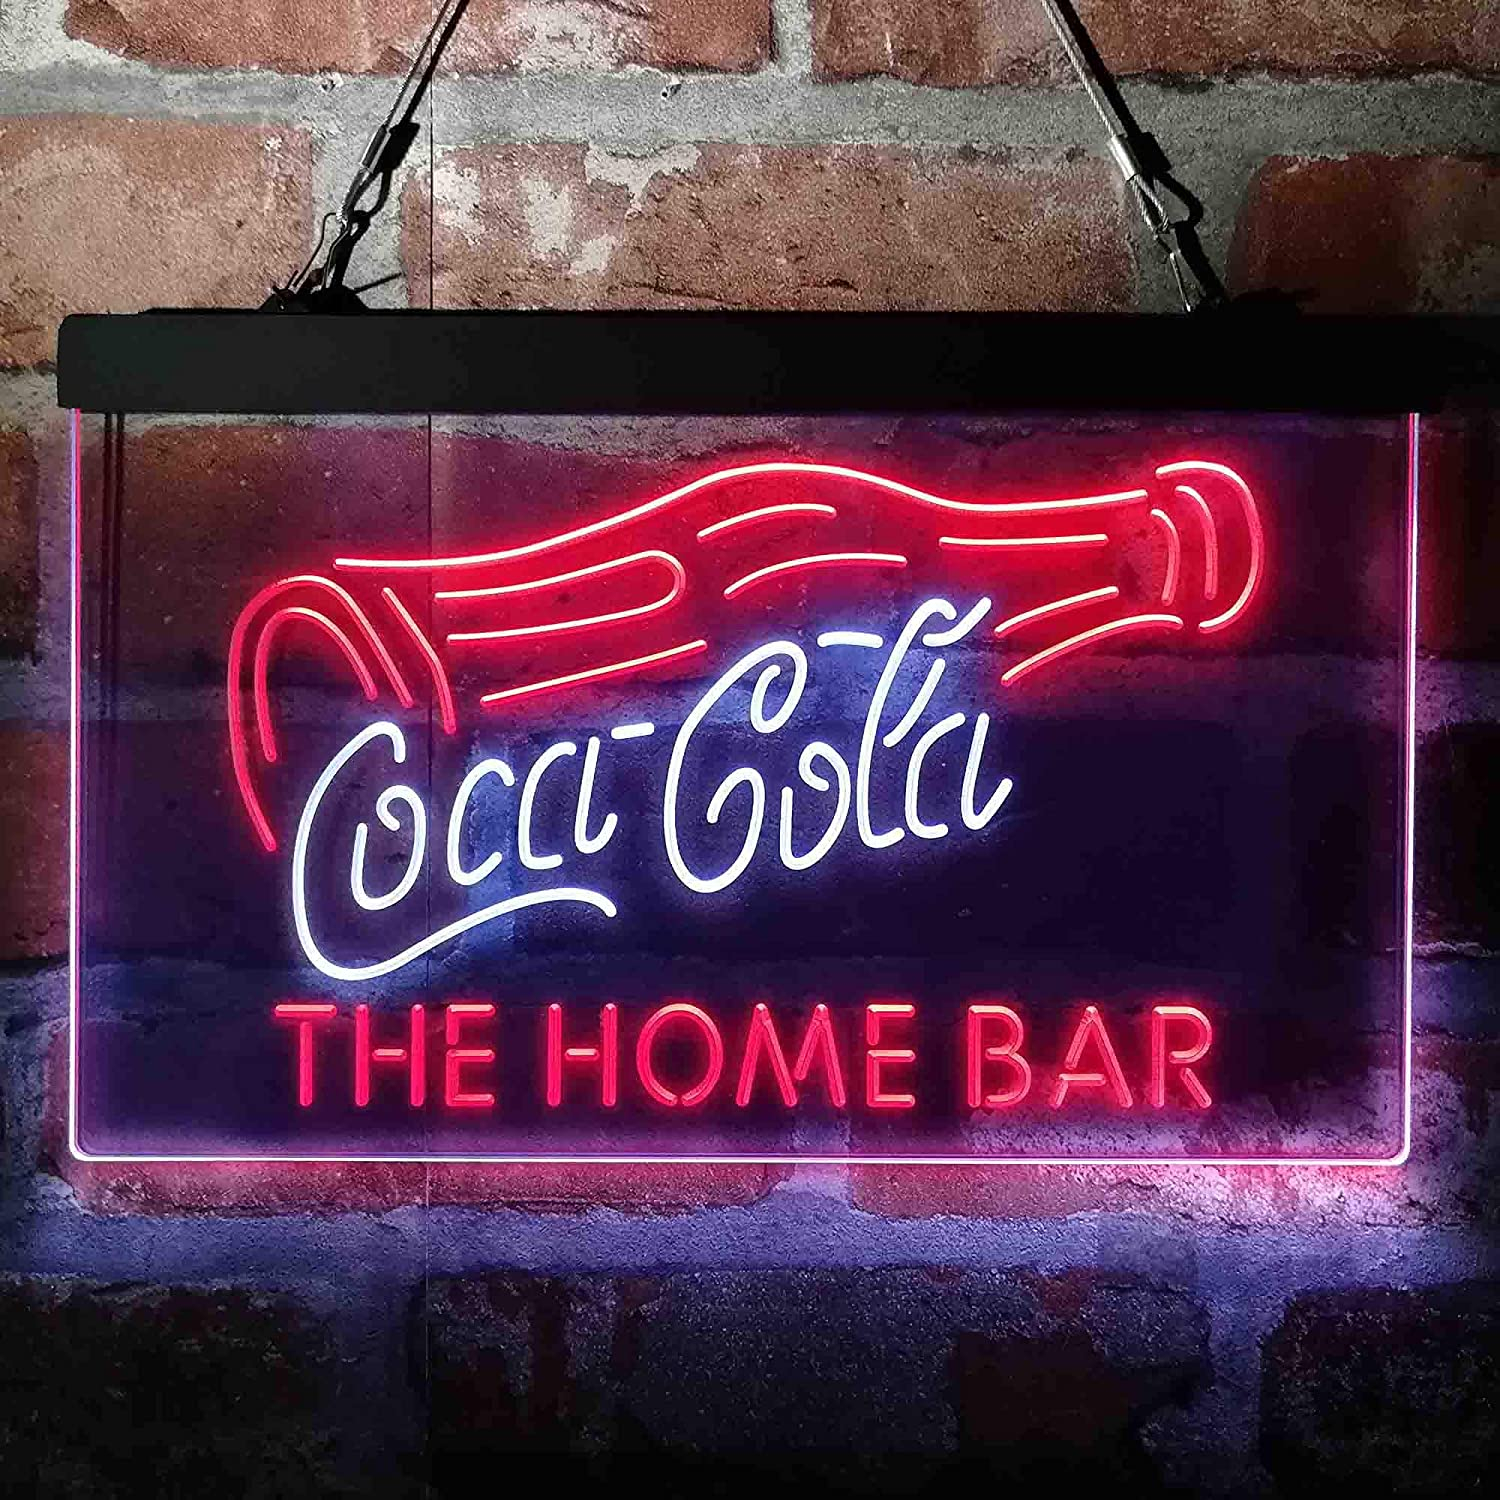 Coca Cola Bottle Drink Bar New product!! Custom Home My C Max 68% OFF Man Personalized